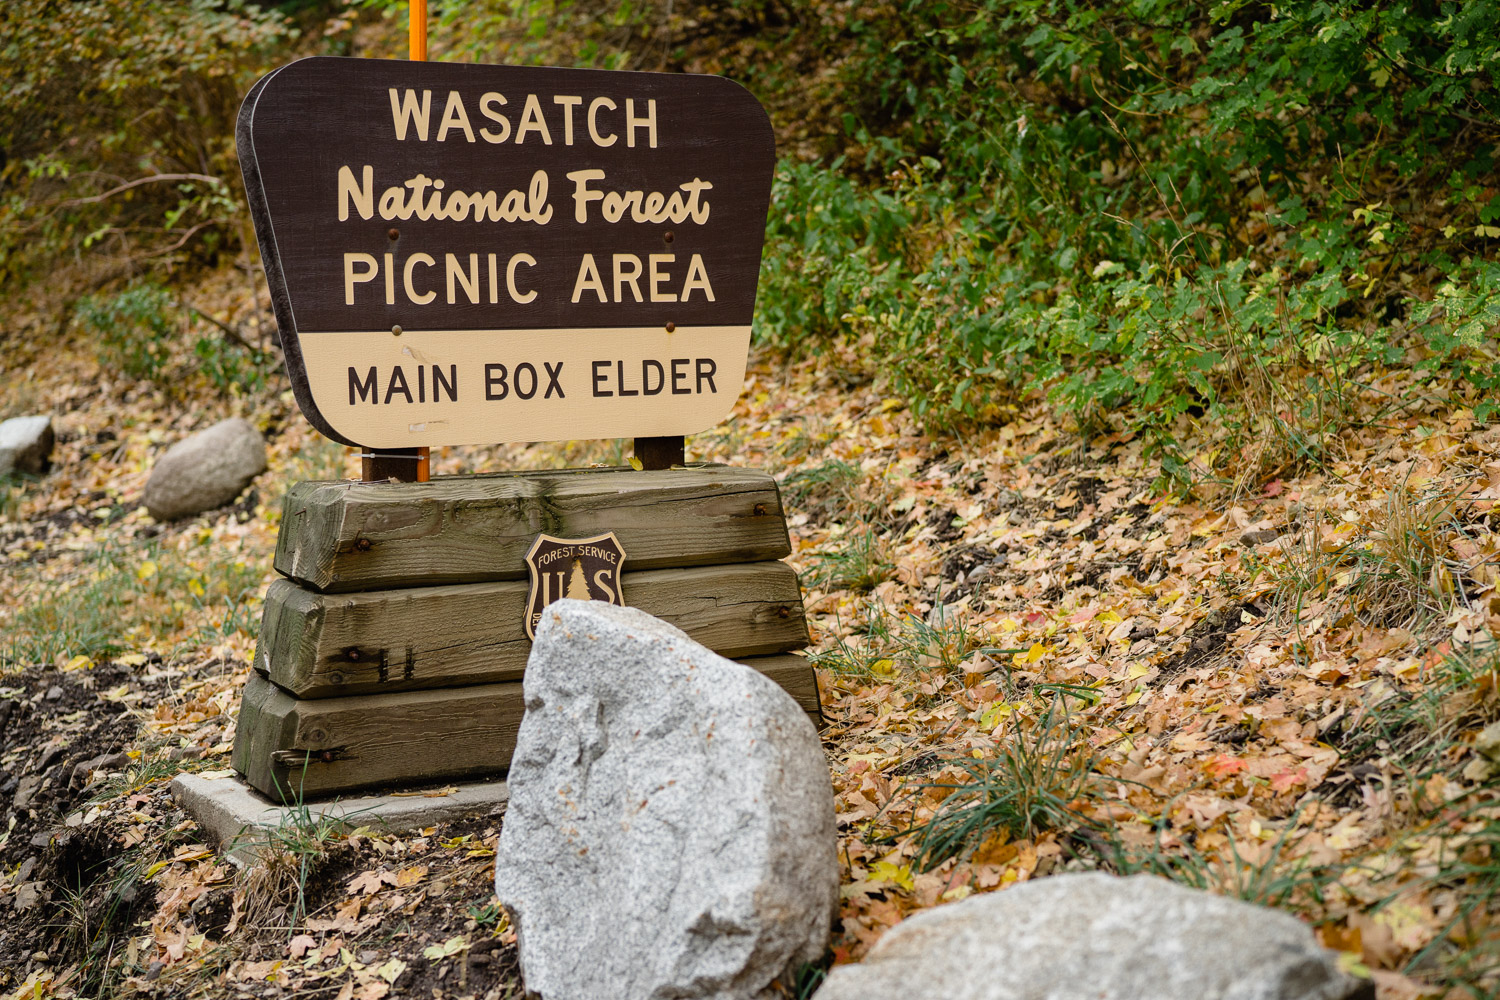 wasatch national forest picnic area sign